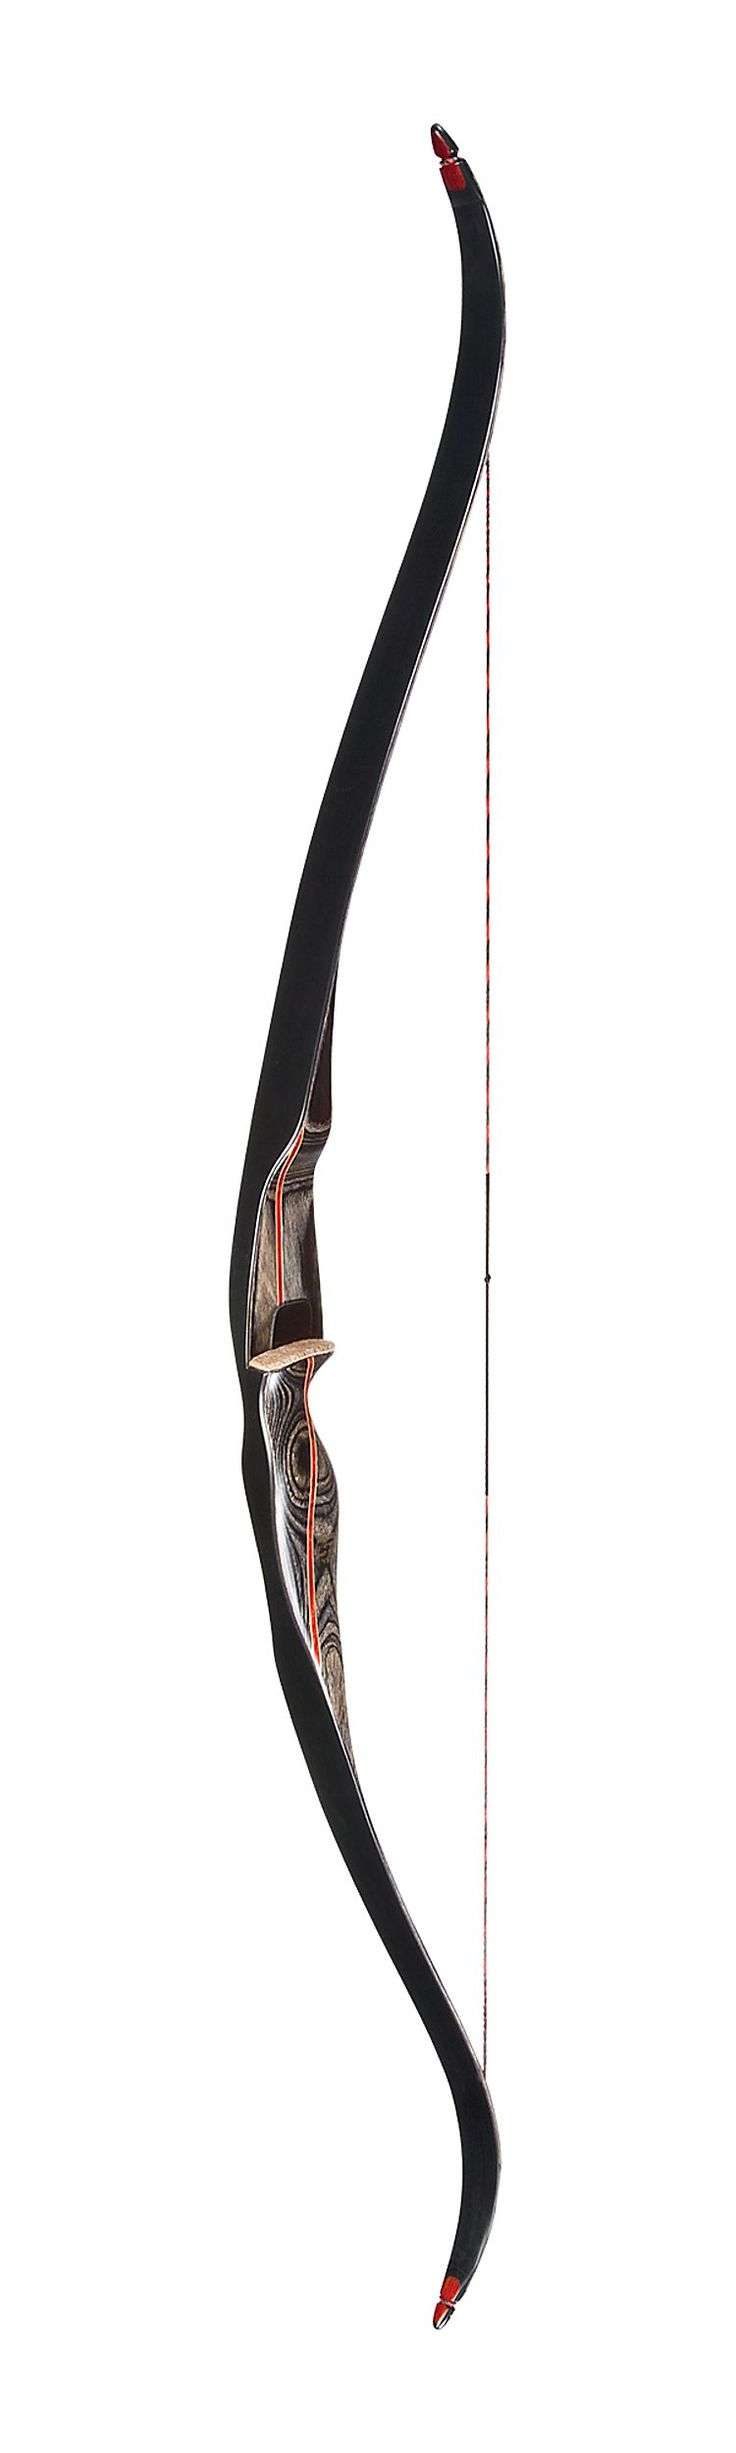 Bear Archery Super Grizzly Recurve Bows | Bass Pro Shops: The Best Hunting, Fishing, Camping & Outdoor Gear